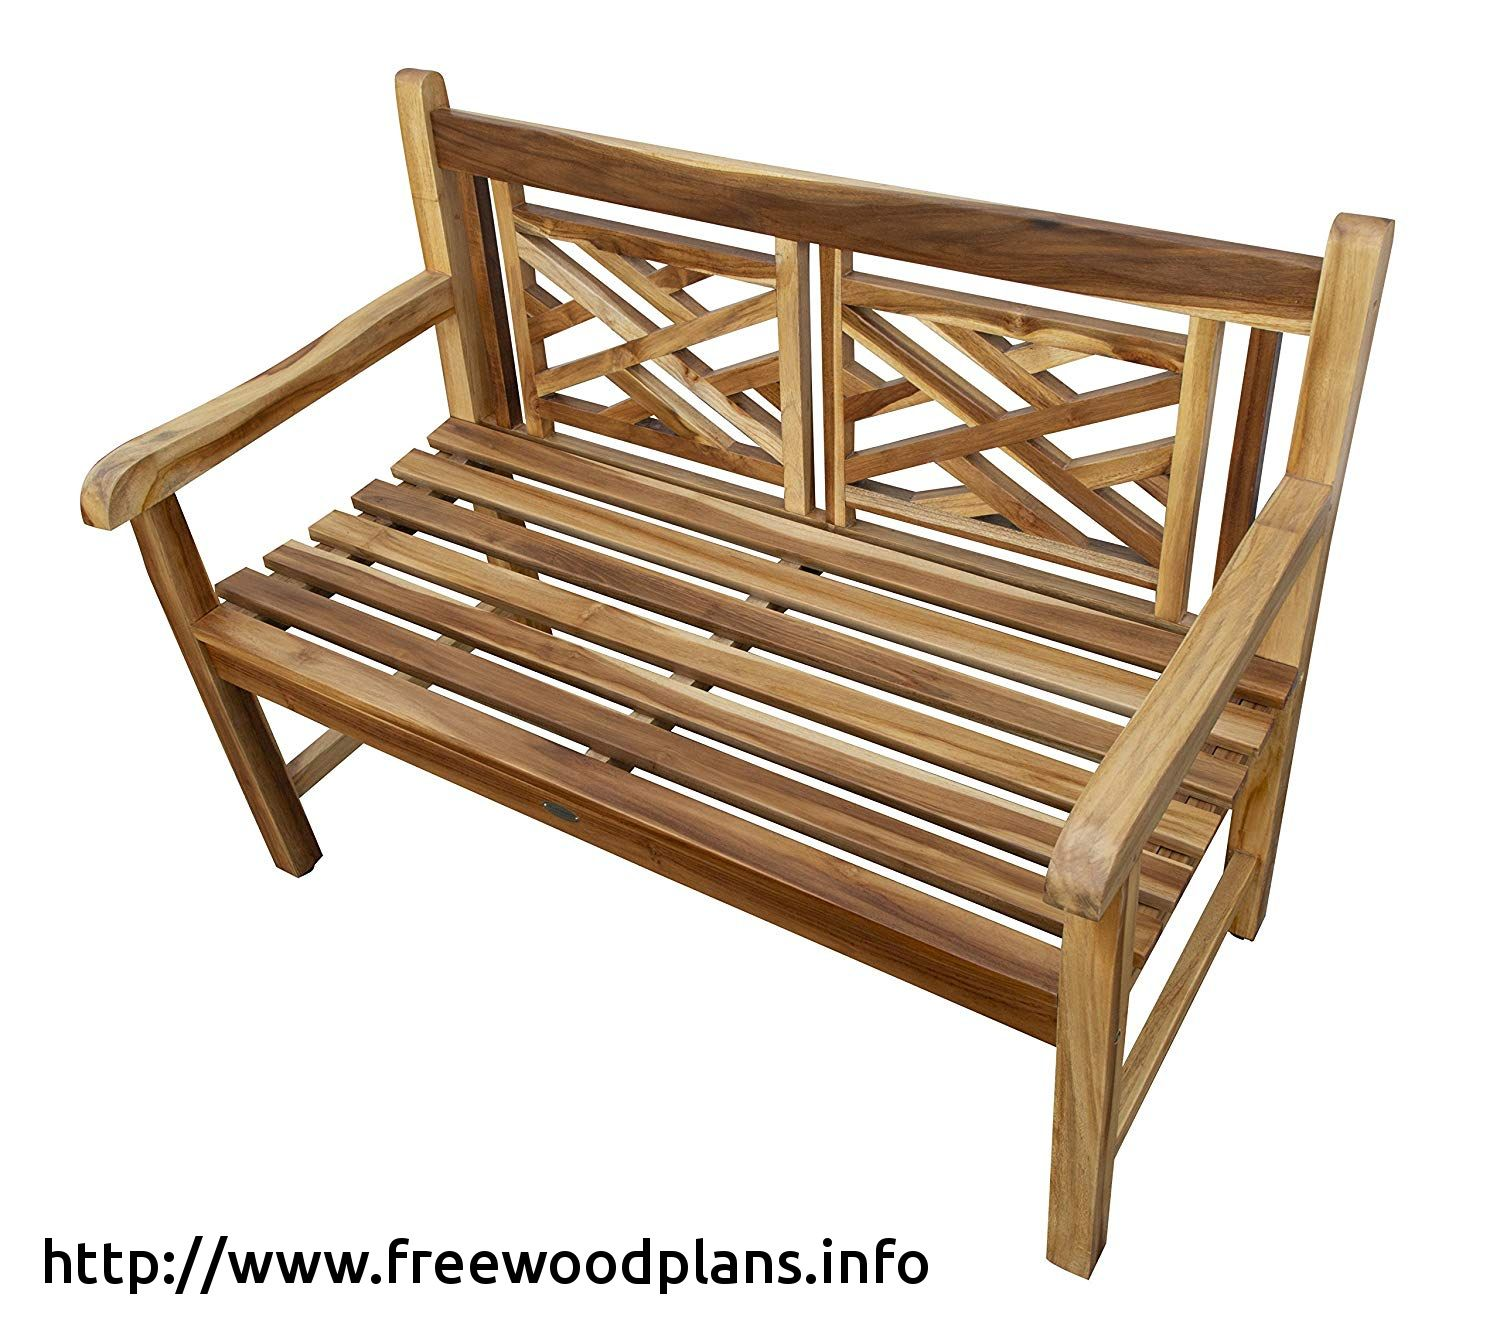 20 Used Woodworking Benches For Sale 2018 Free Woodworking